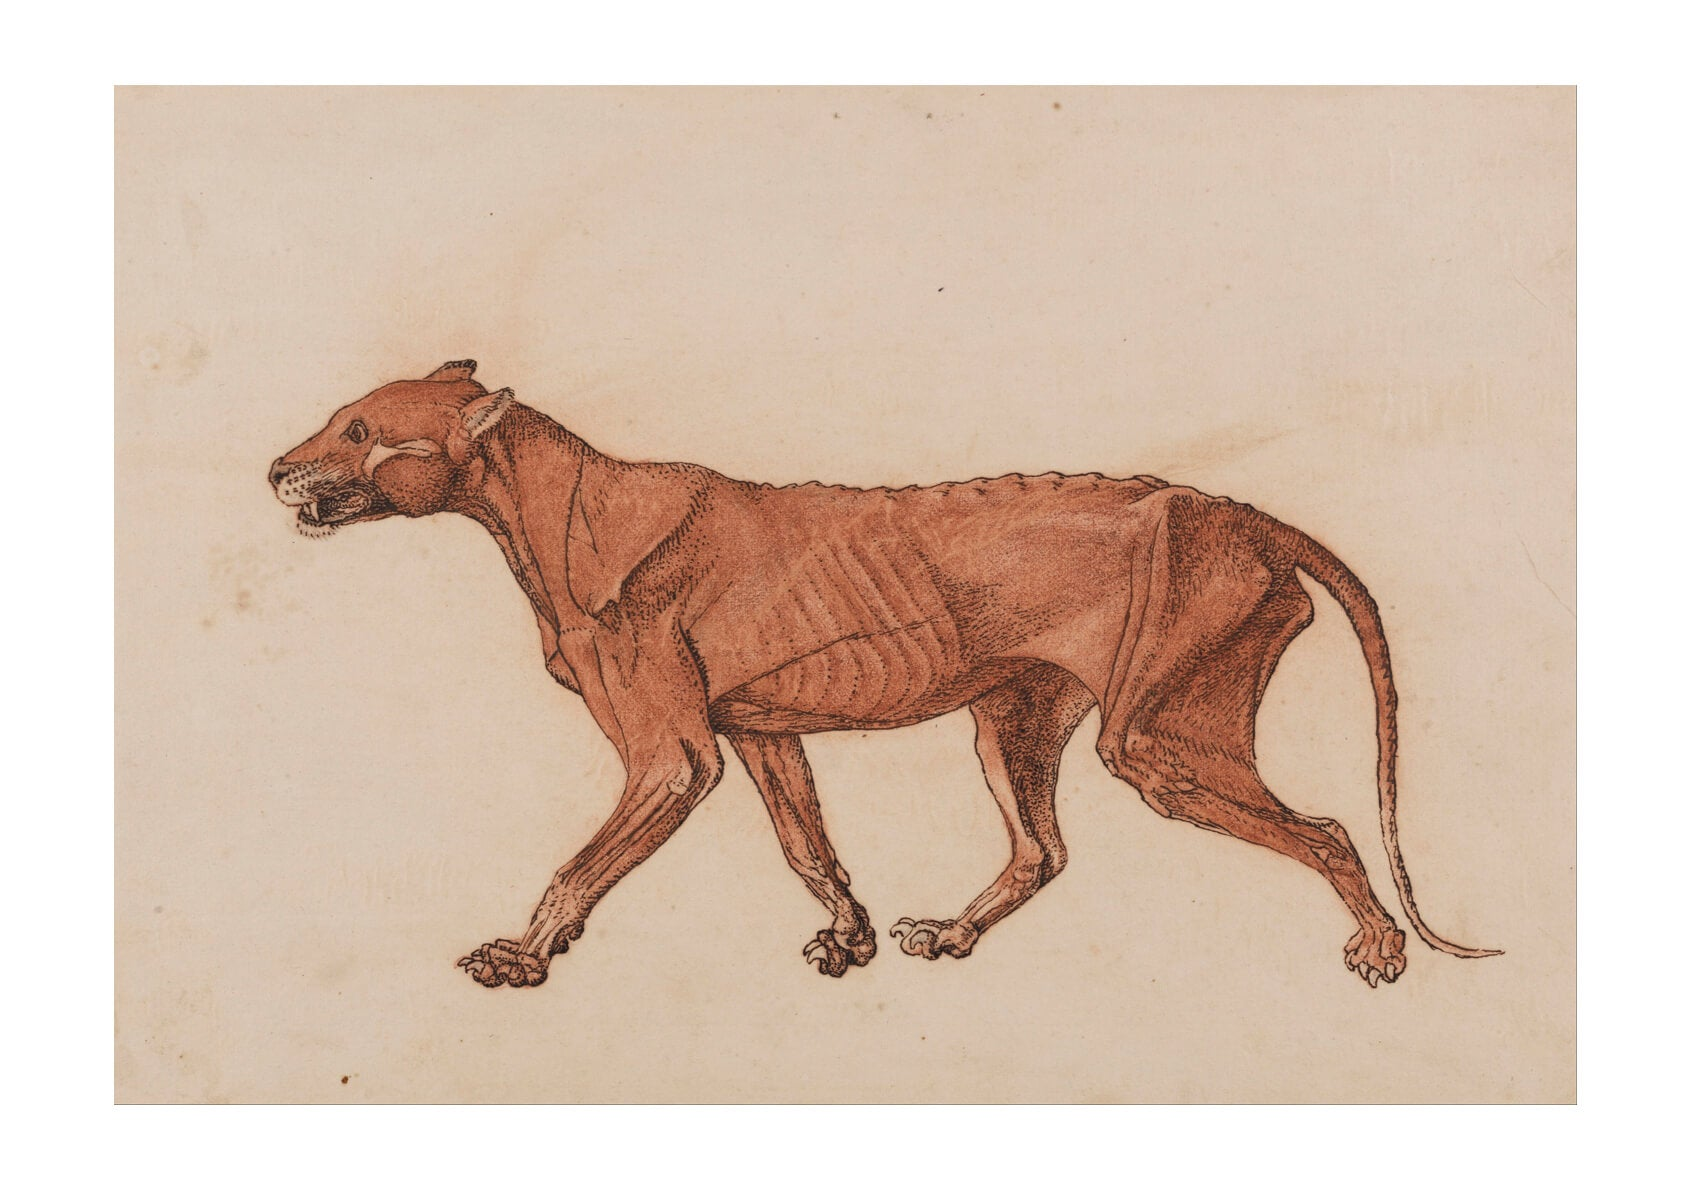 George Stubbs - Dog Anatomical Structure of A Body